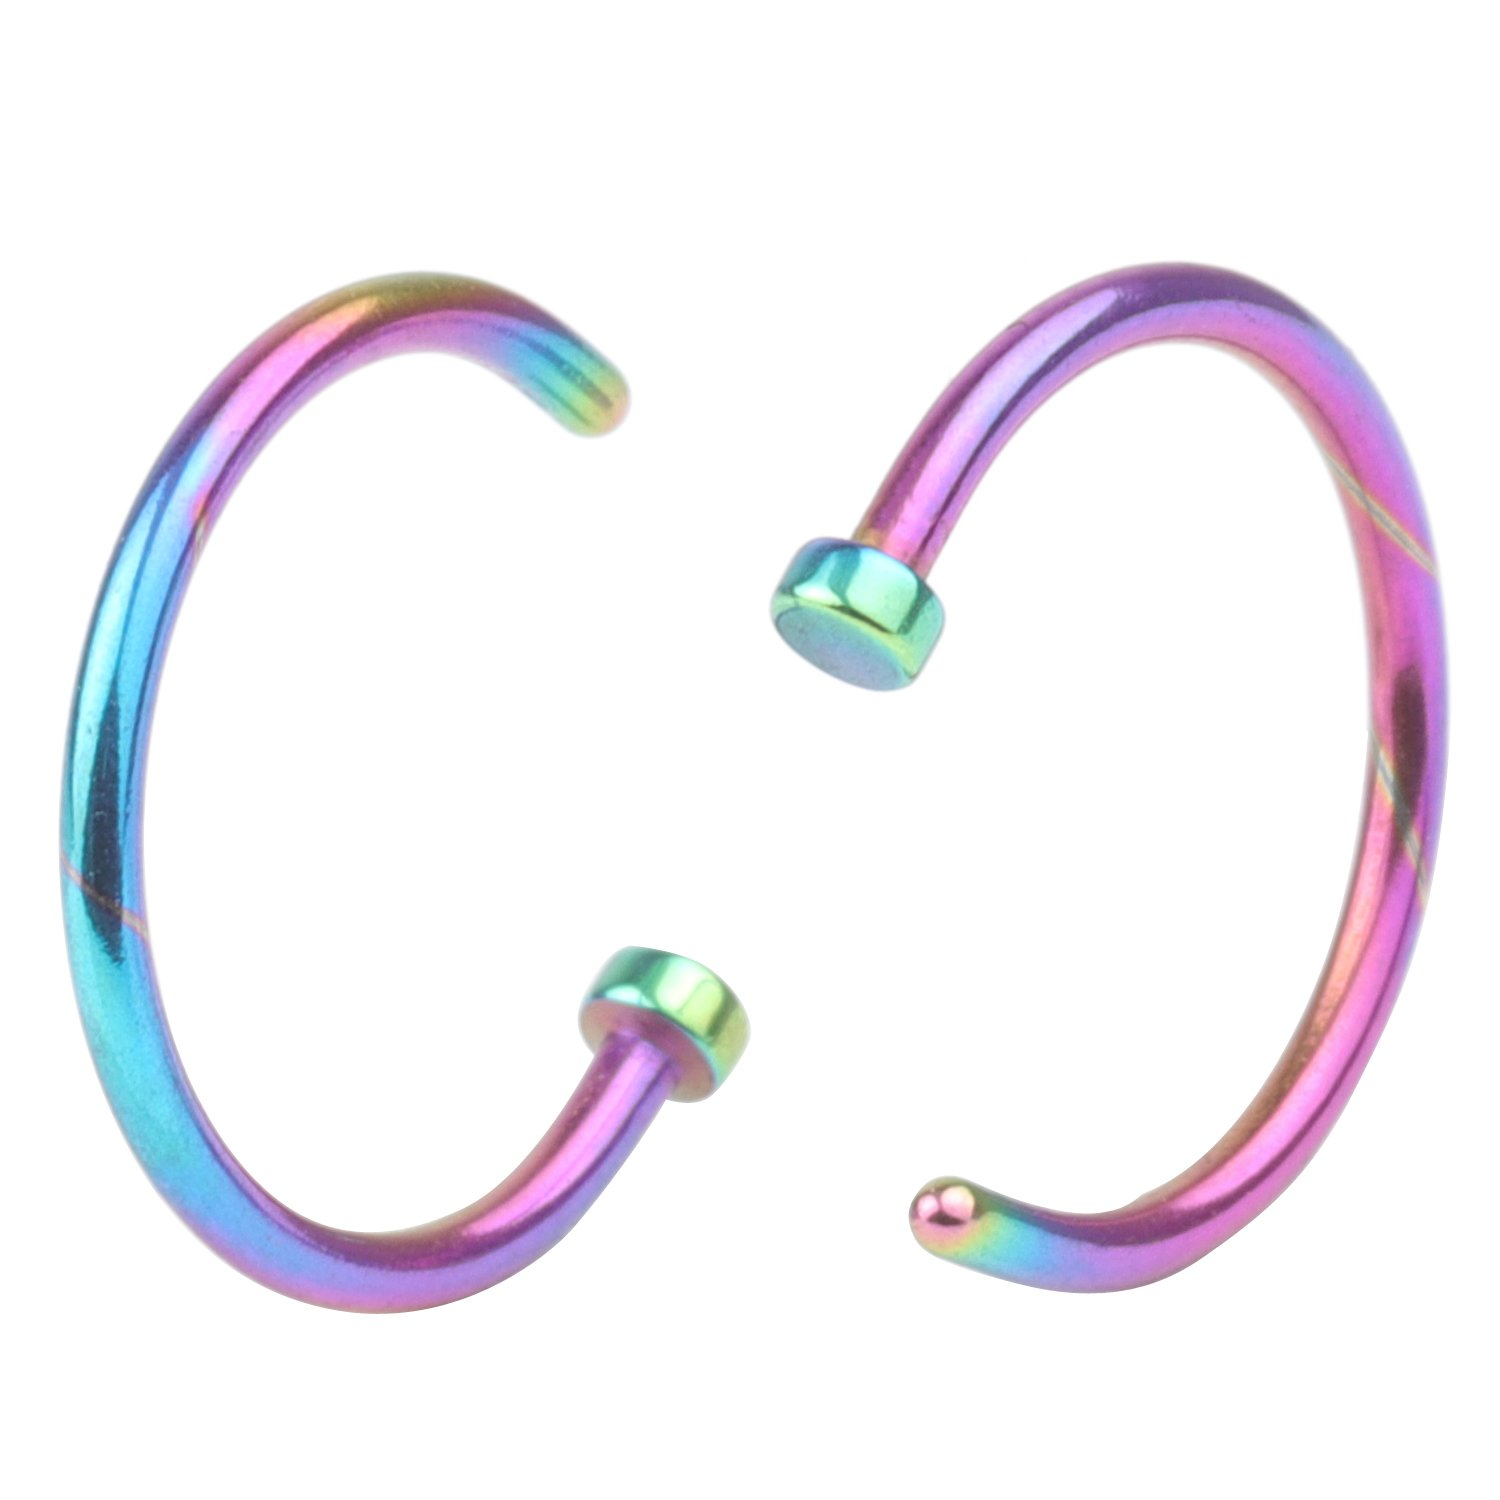 CM A+ 2Pcs 20G 10mm Hot Colorful Stainless Steel Nose Open Hoop Ring Earring Body Piercing Studs Jewelry Set Fashion Piercing Jewelry